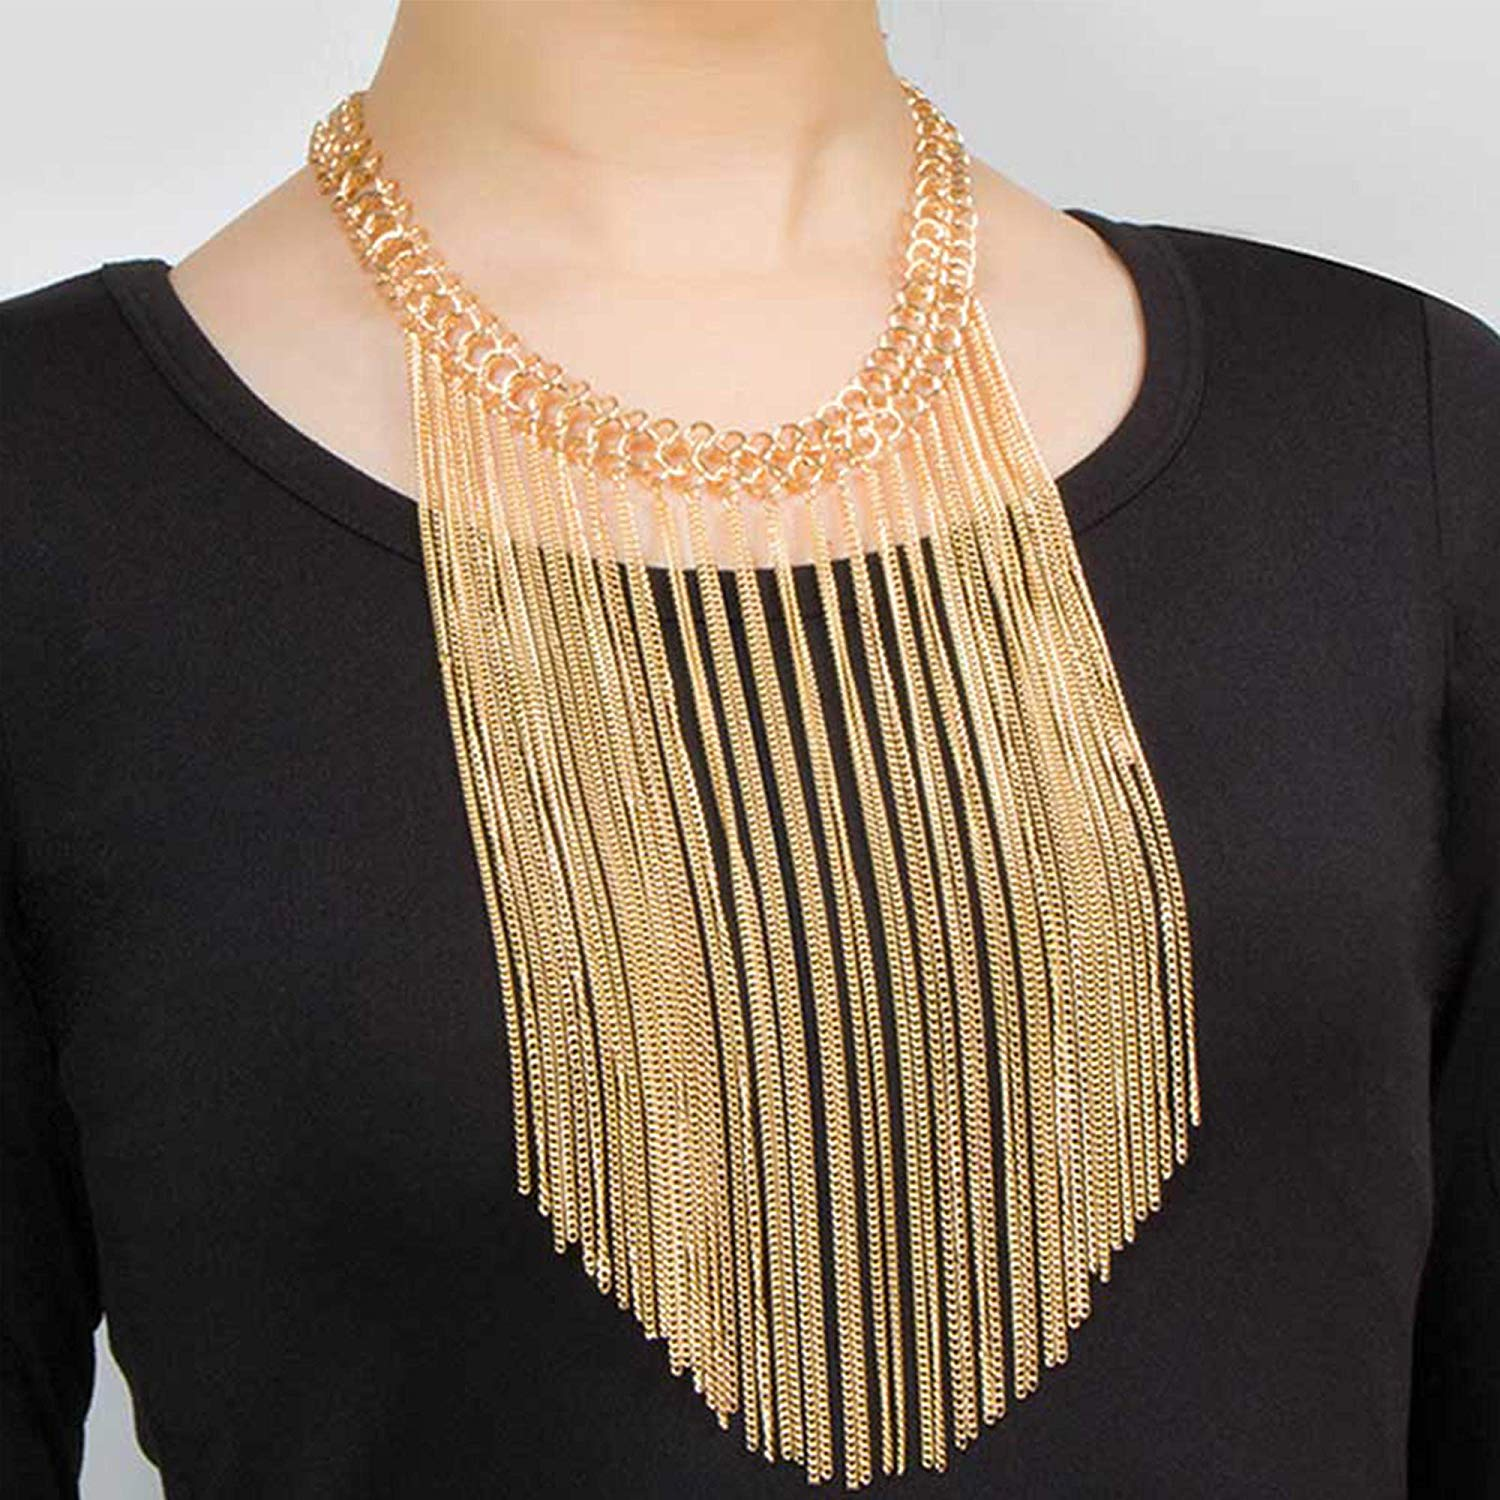 81U85A9Yq7L._UL1500_ Gold Multi Layered Drop Dangle Long Chain Tassel Statement Necklace for Women